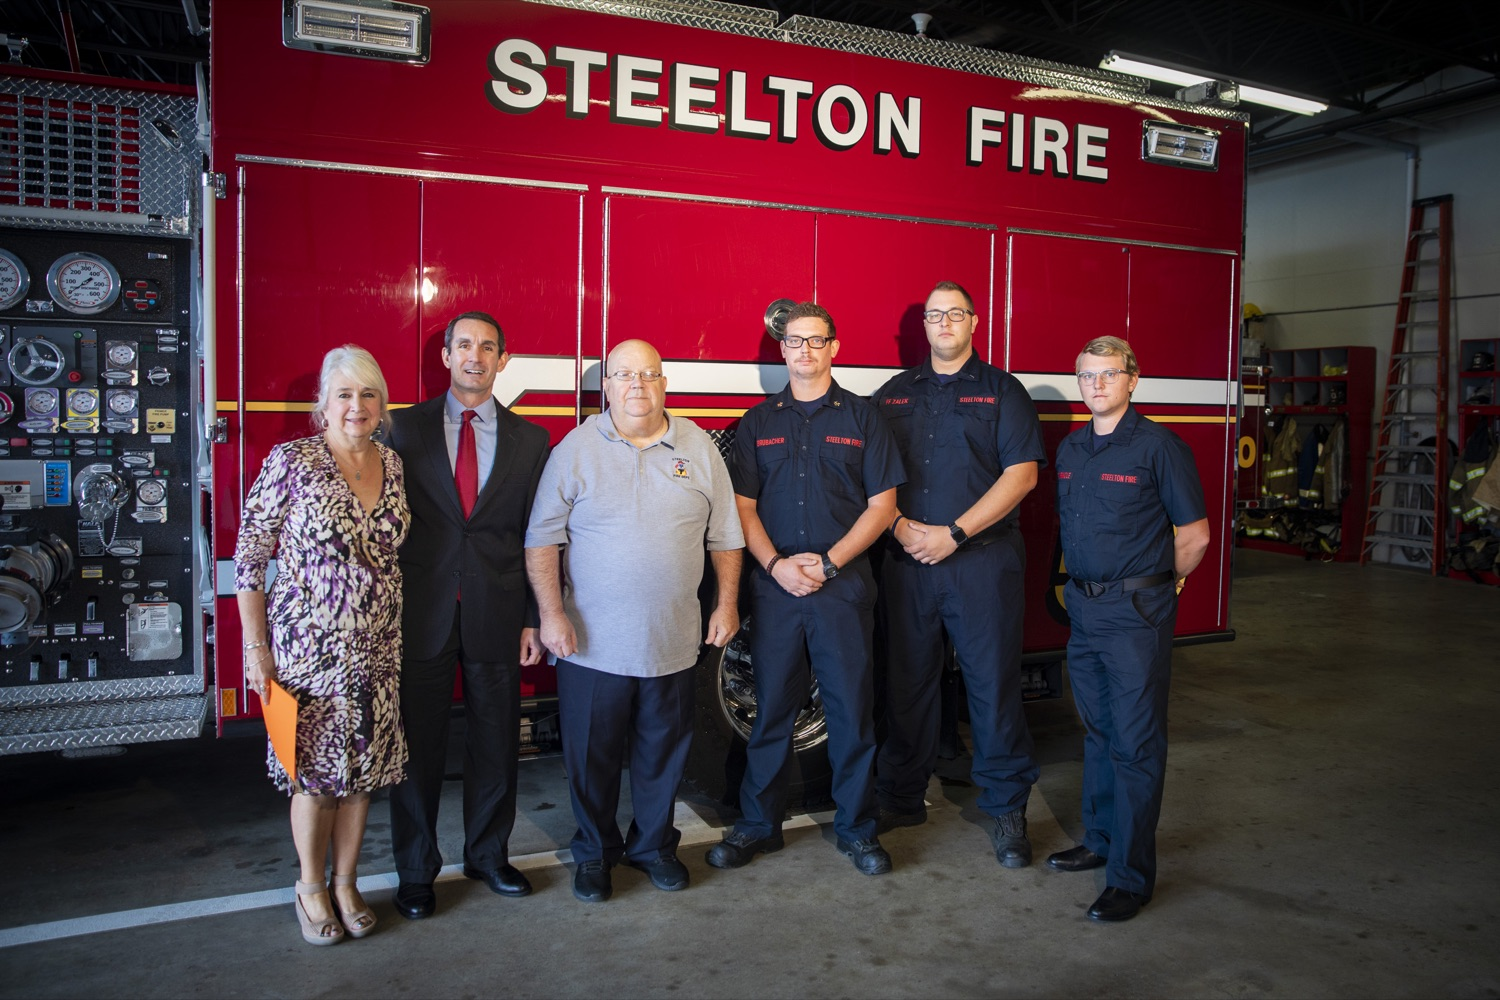 """<a href=""""https://filesource.wostreaming.net/commonwealthofpa/photo/17459_AUD_GEN_VFRA_CZ_04.JPG"""" target=""""_blank"""">⇣Download Photo<br></a>Auditor General Eugene DePasquale stands with members of the Steelton Fire Company in Steelton, PA on October 8, 2019."""